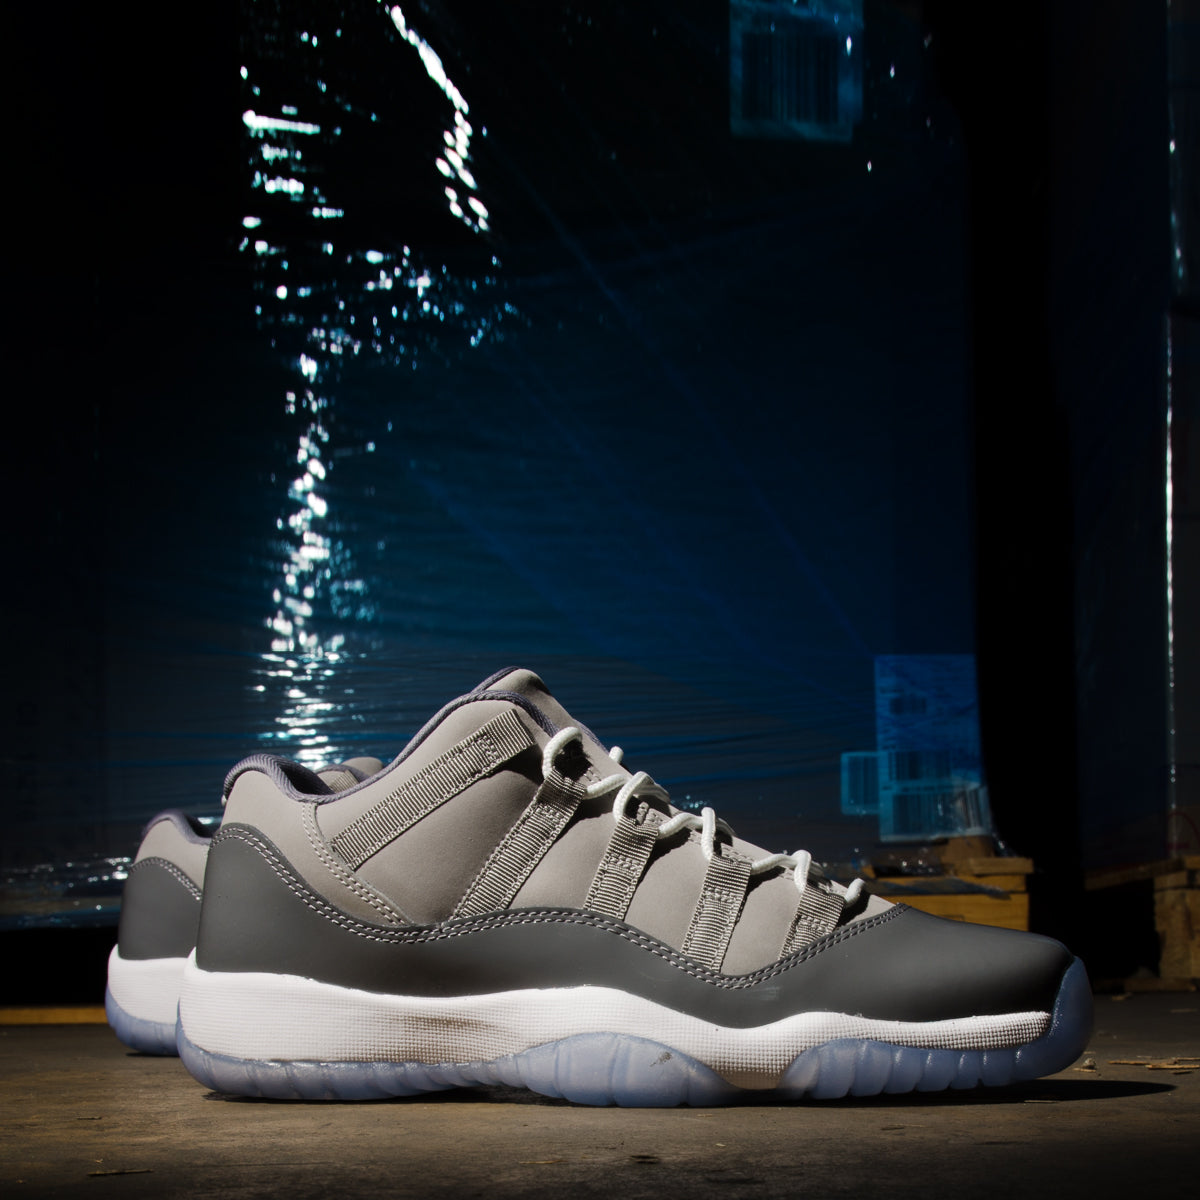 e0a3dc71912c2 Men s Air Jordan 11 Retro Low Cool Grey – Chicago City Sports